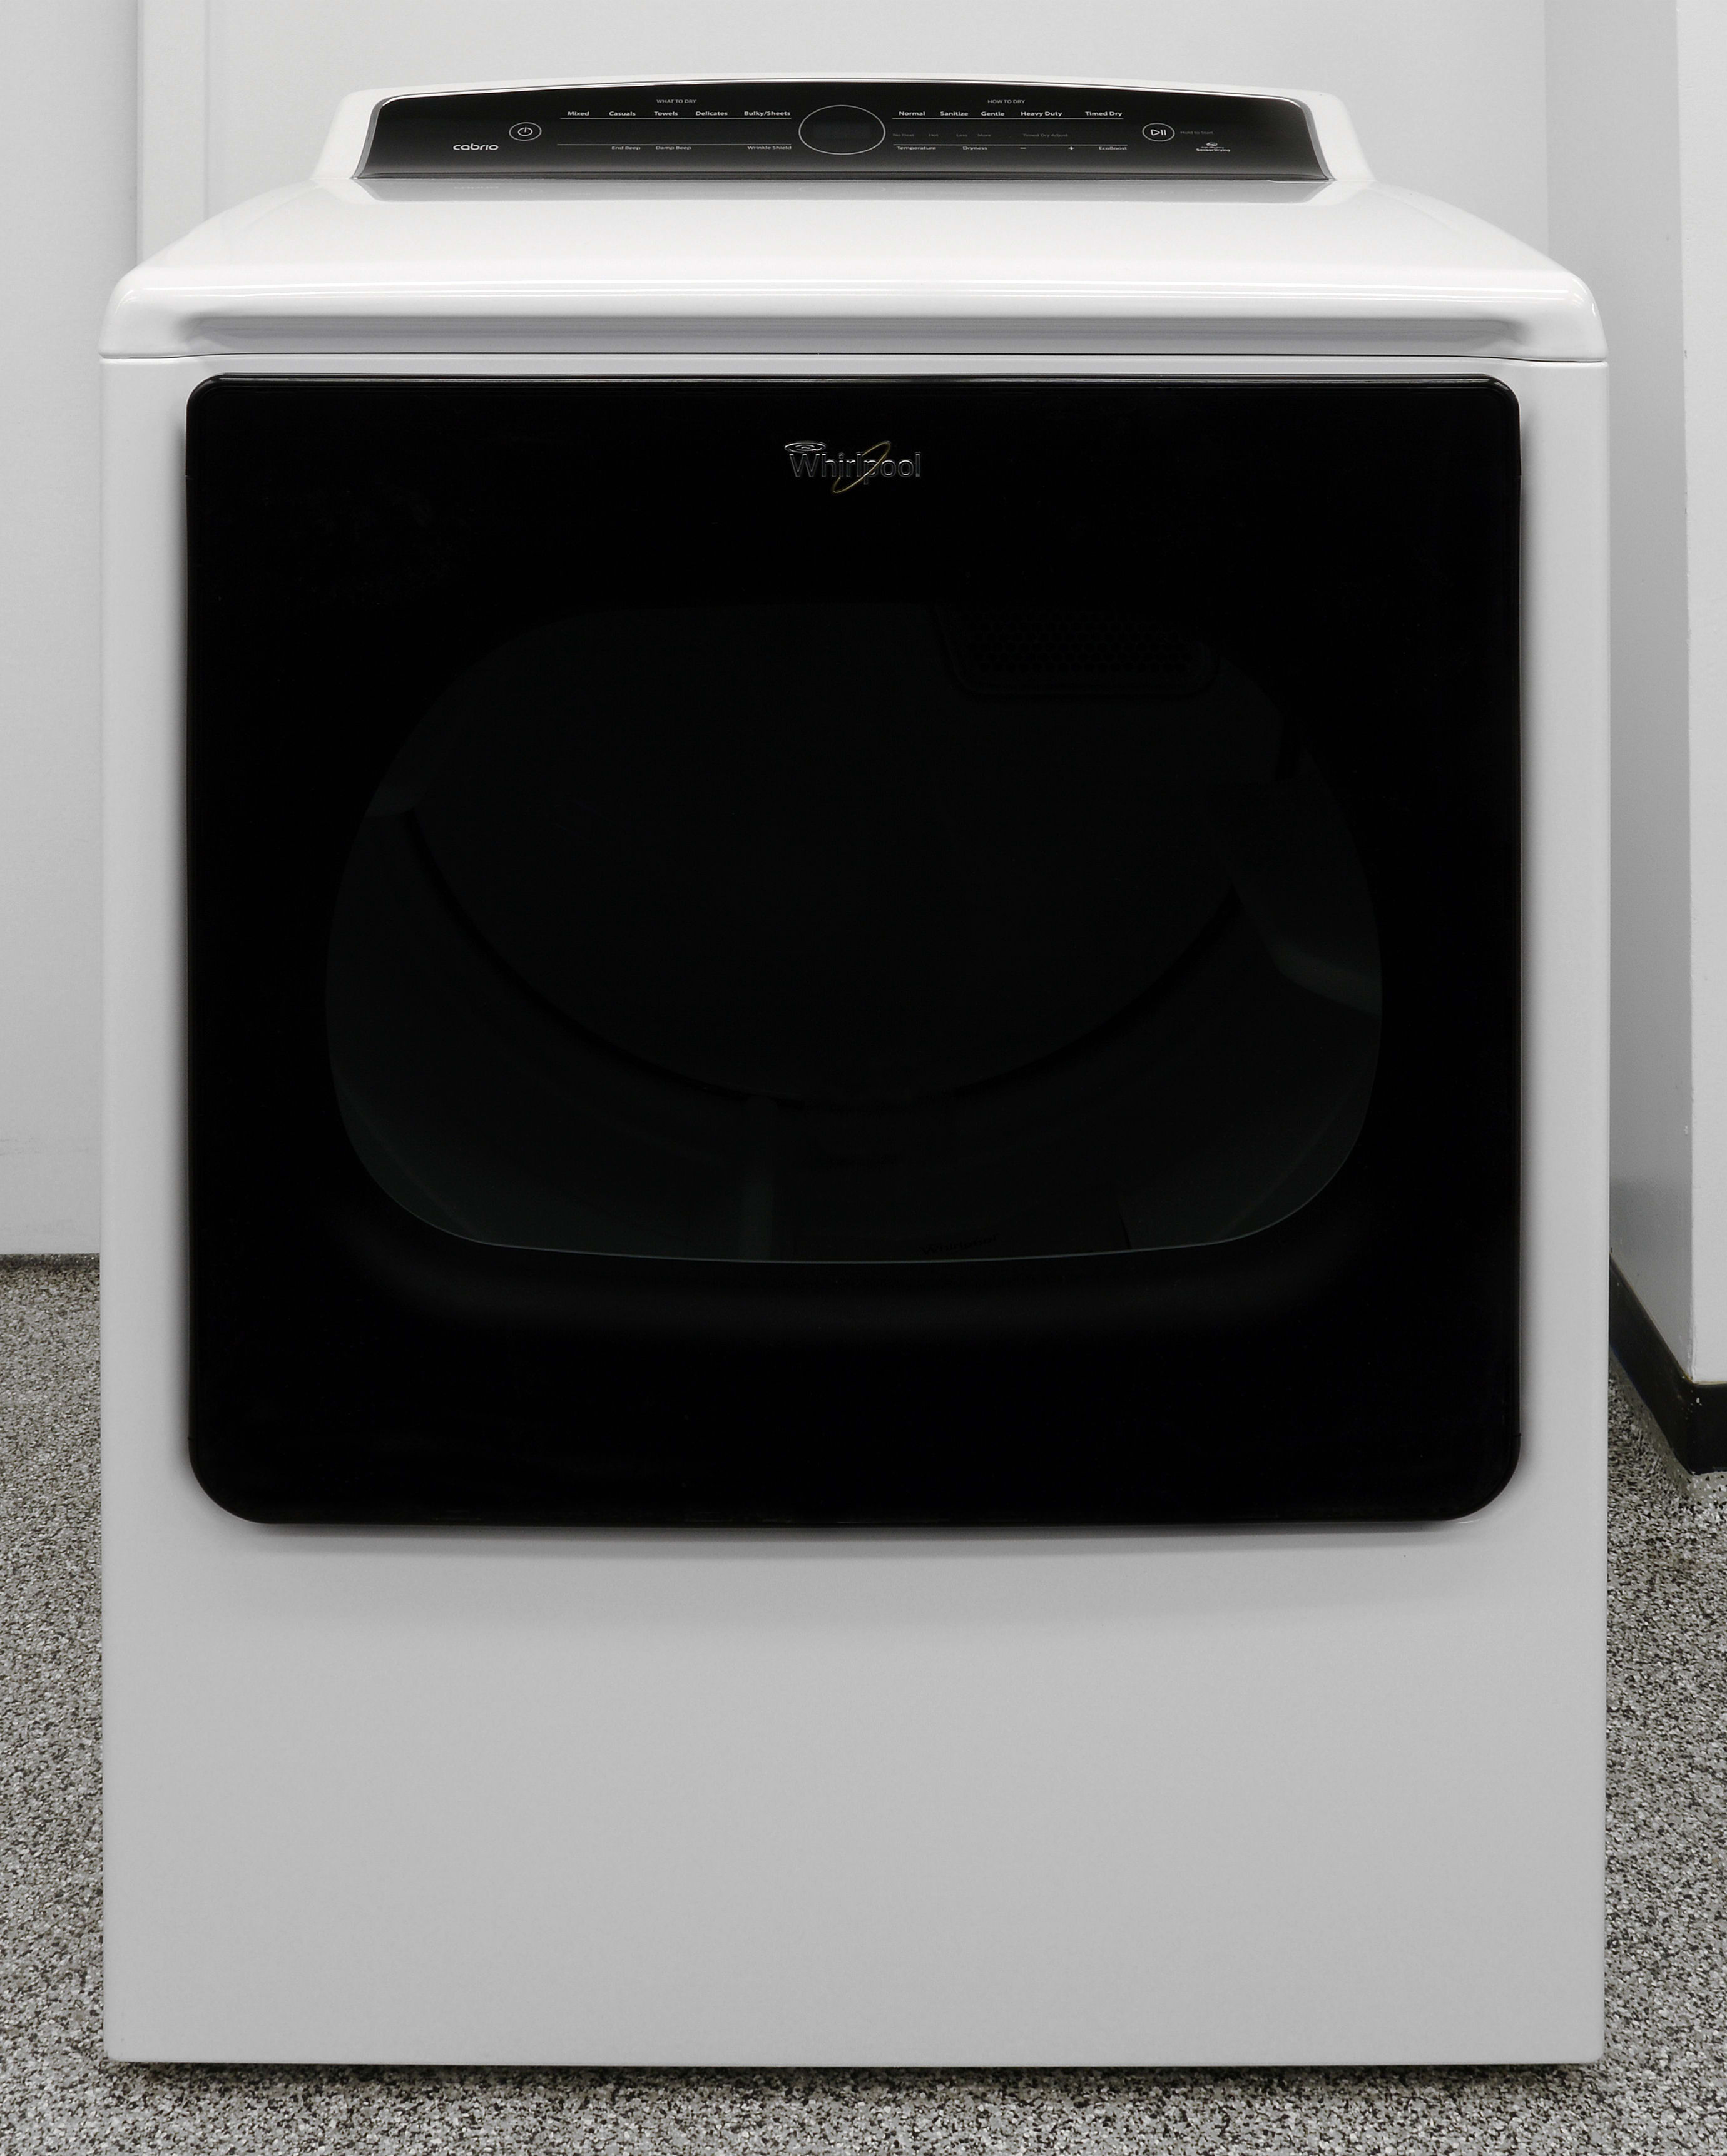 The translucent door breaks up the visual monotony common to basic, white dryers similar to the Whirlpool Cabrio WED8000DW.